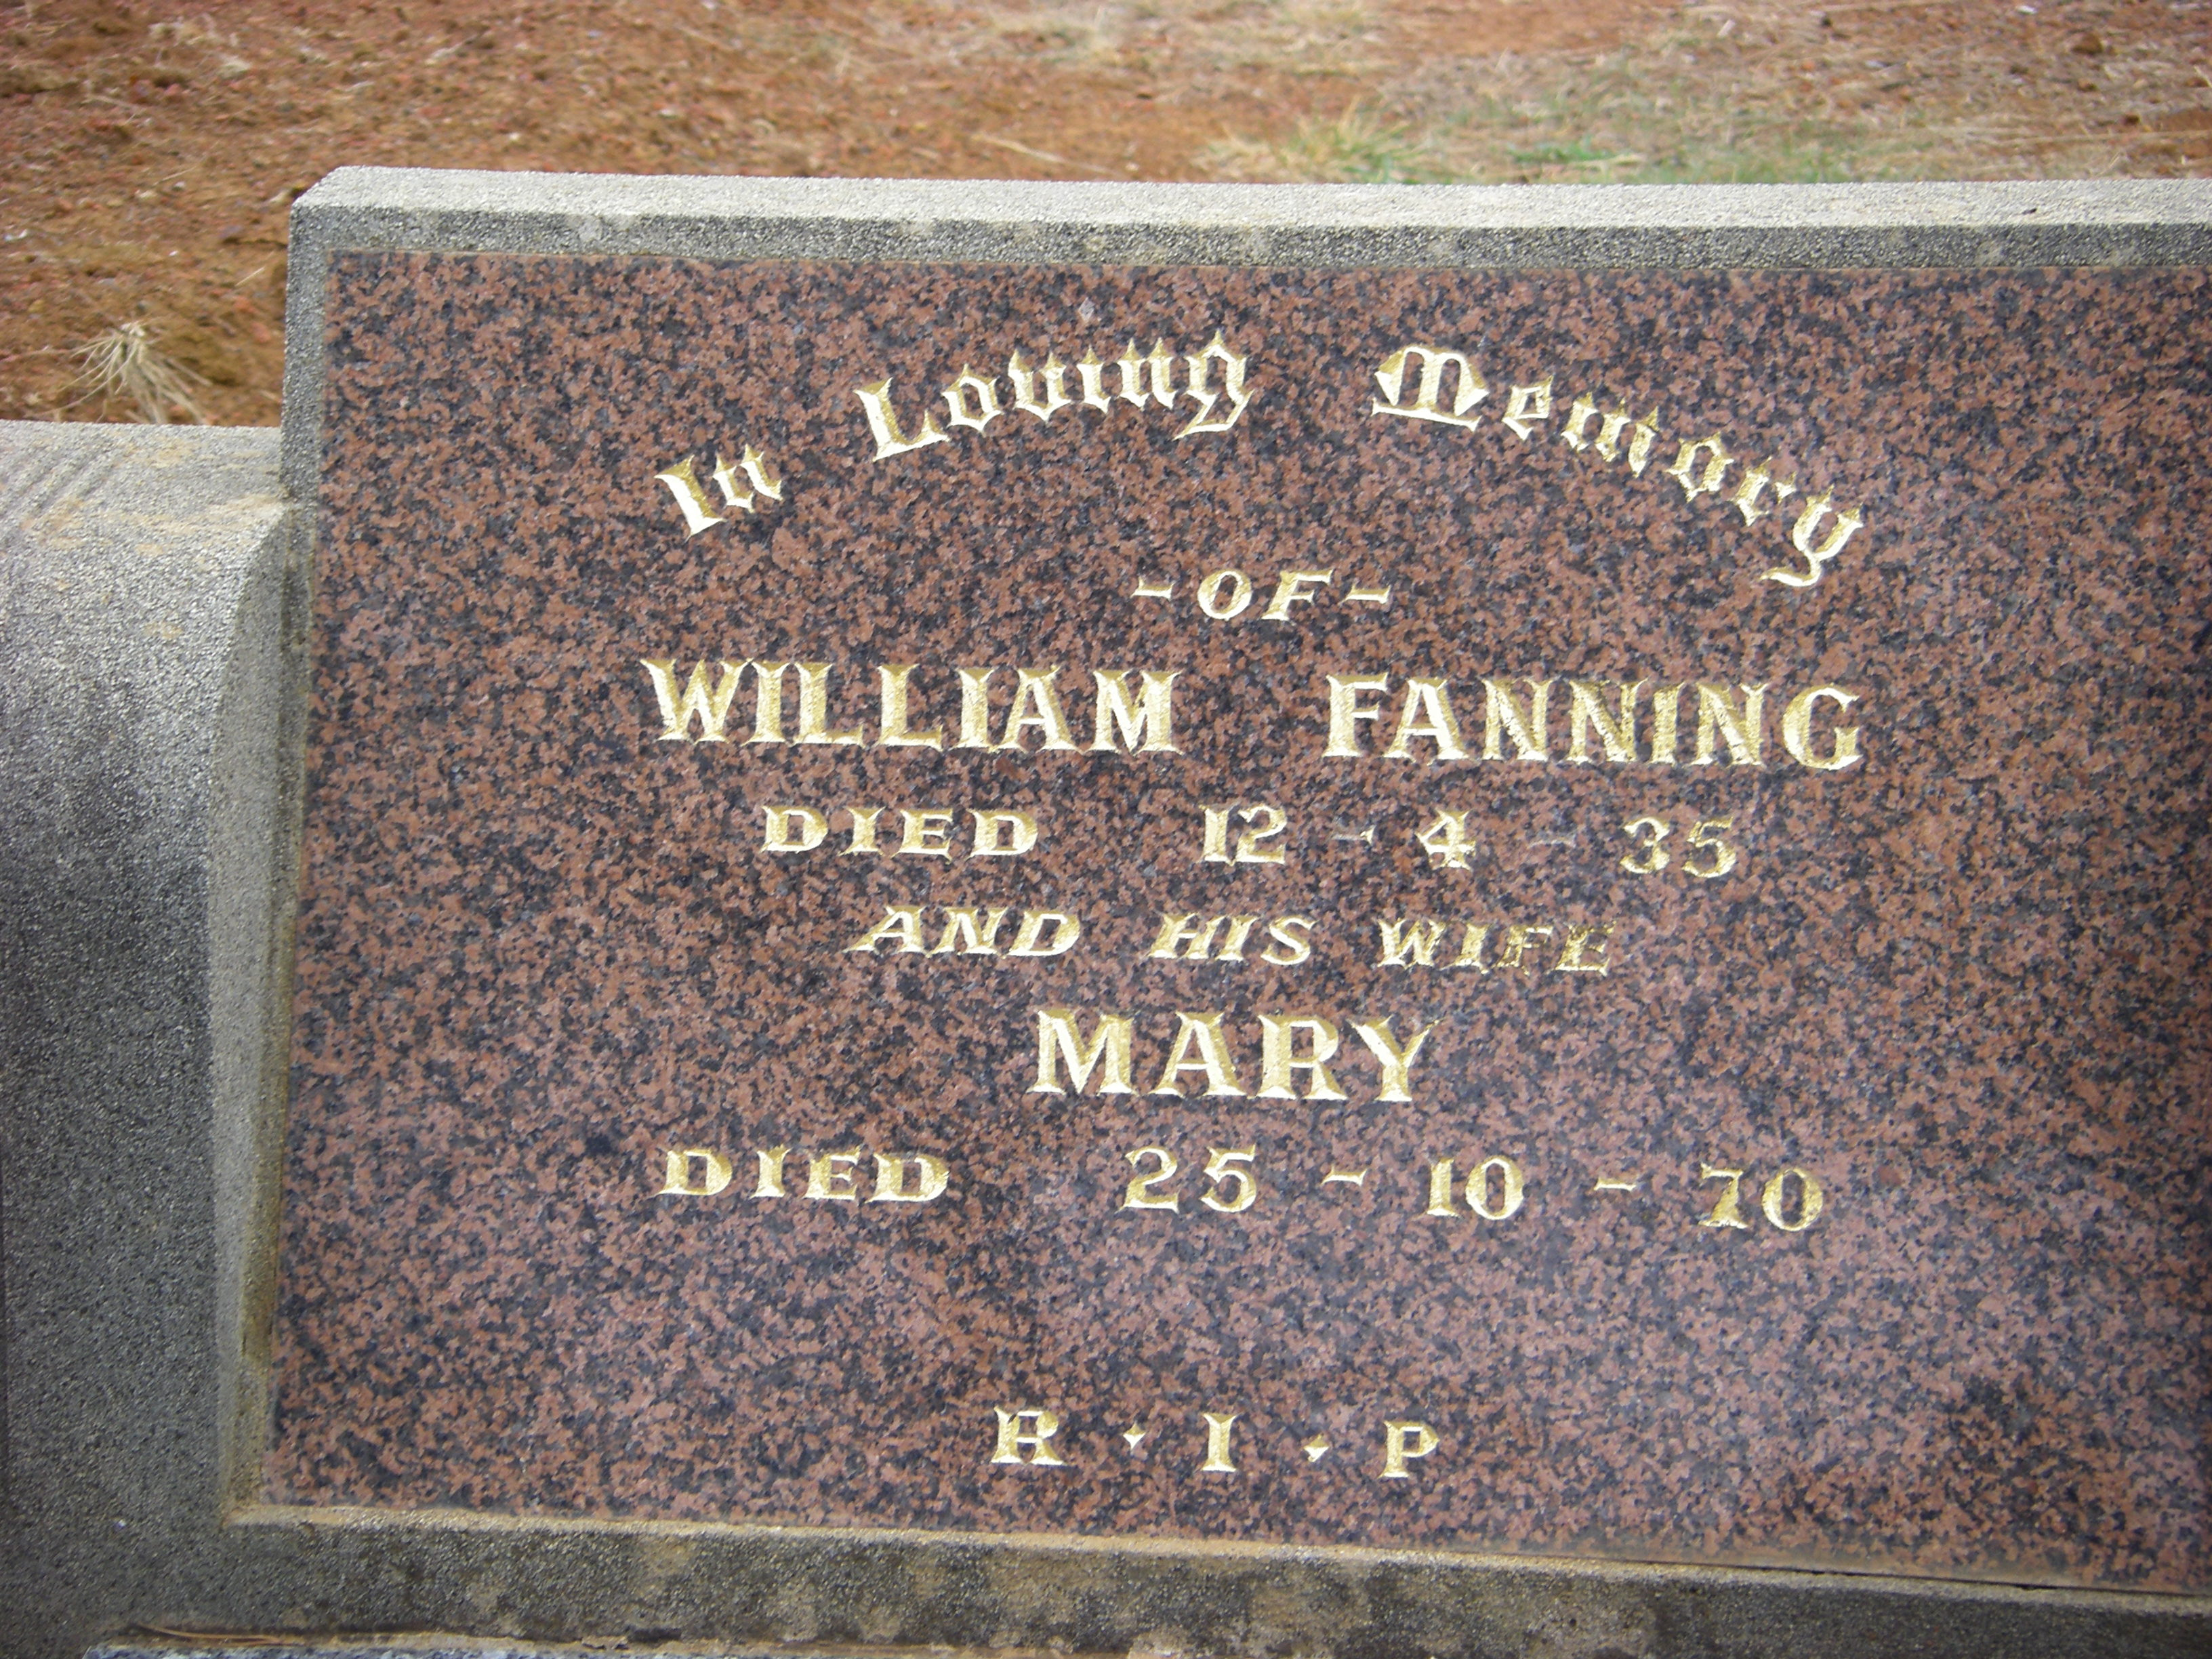 William Fanning 1935 & Mary (Daisy) Fanning 1970 Bulla Cem.